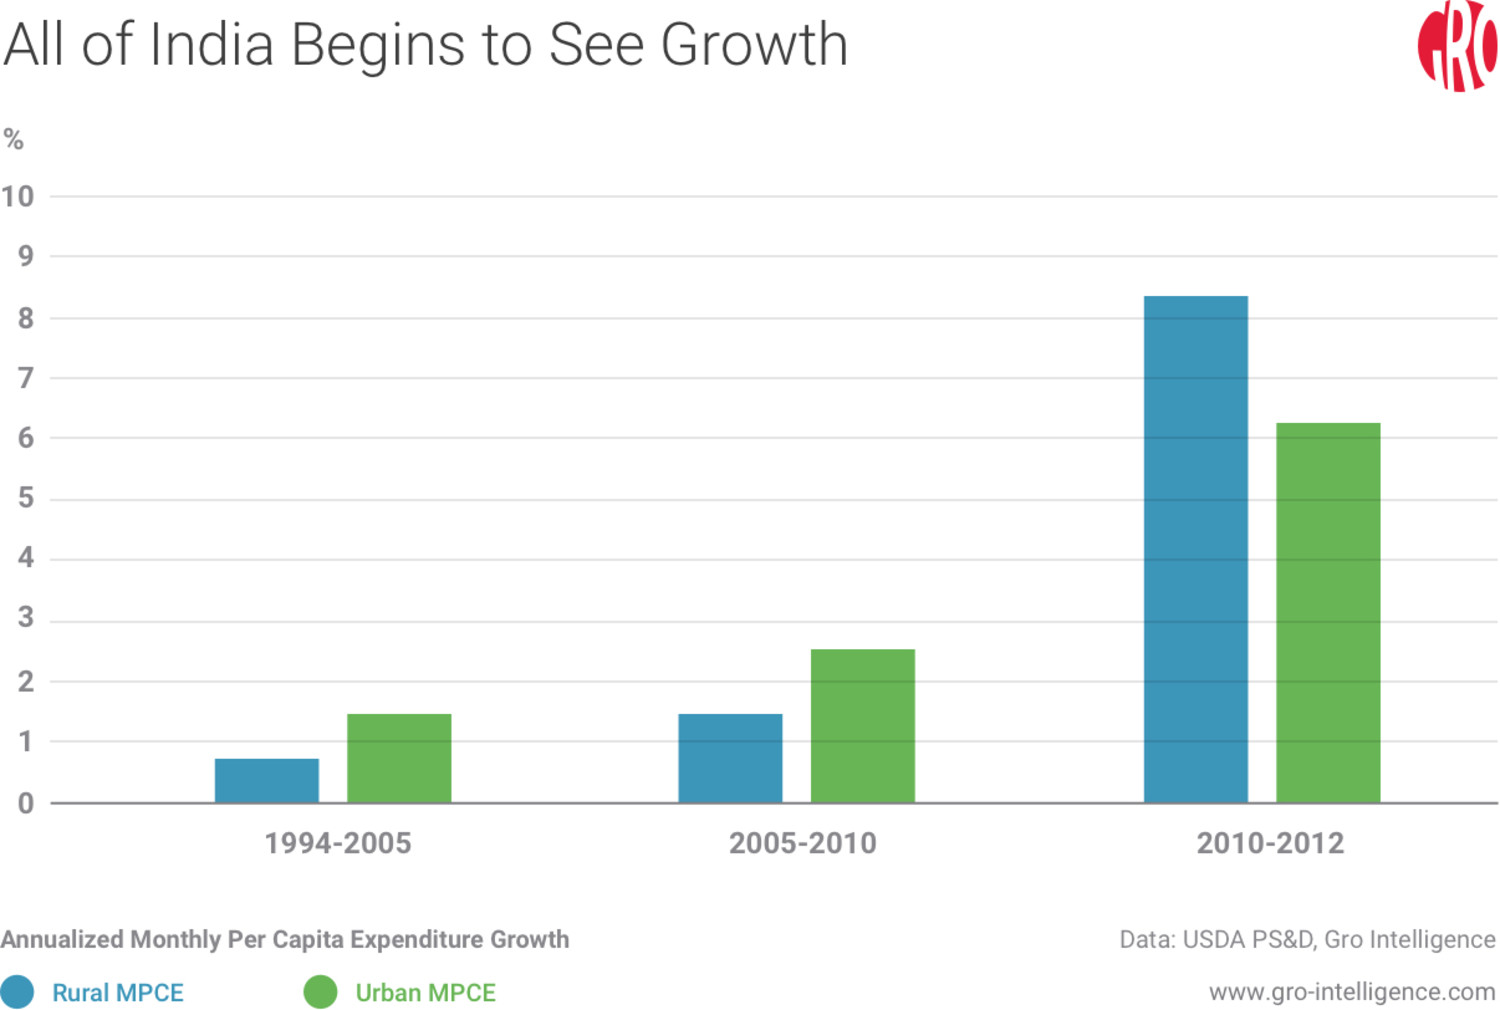 All of India Begins to See Growth